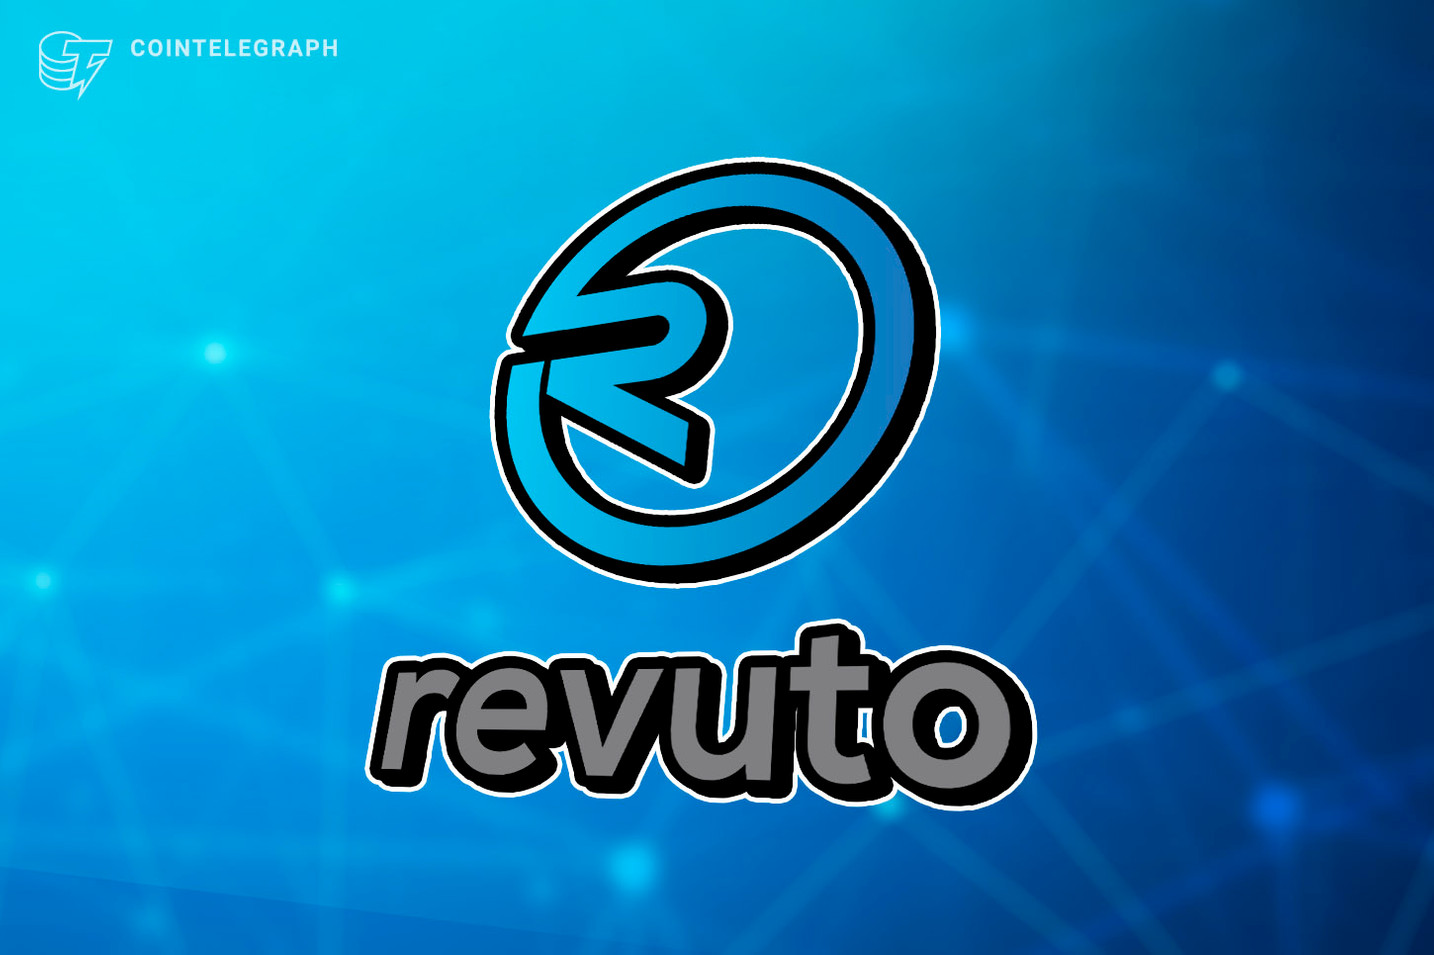 Revuto to have public token sale to deliver subscription payments on Cardano